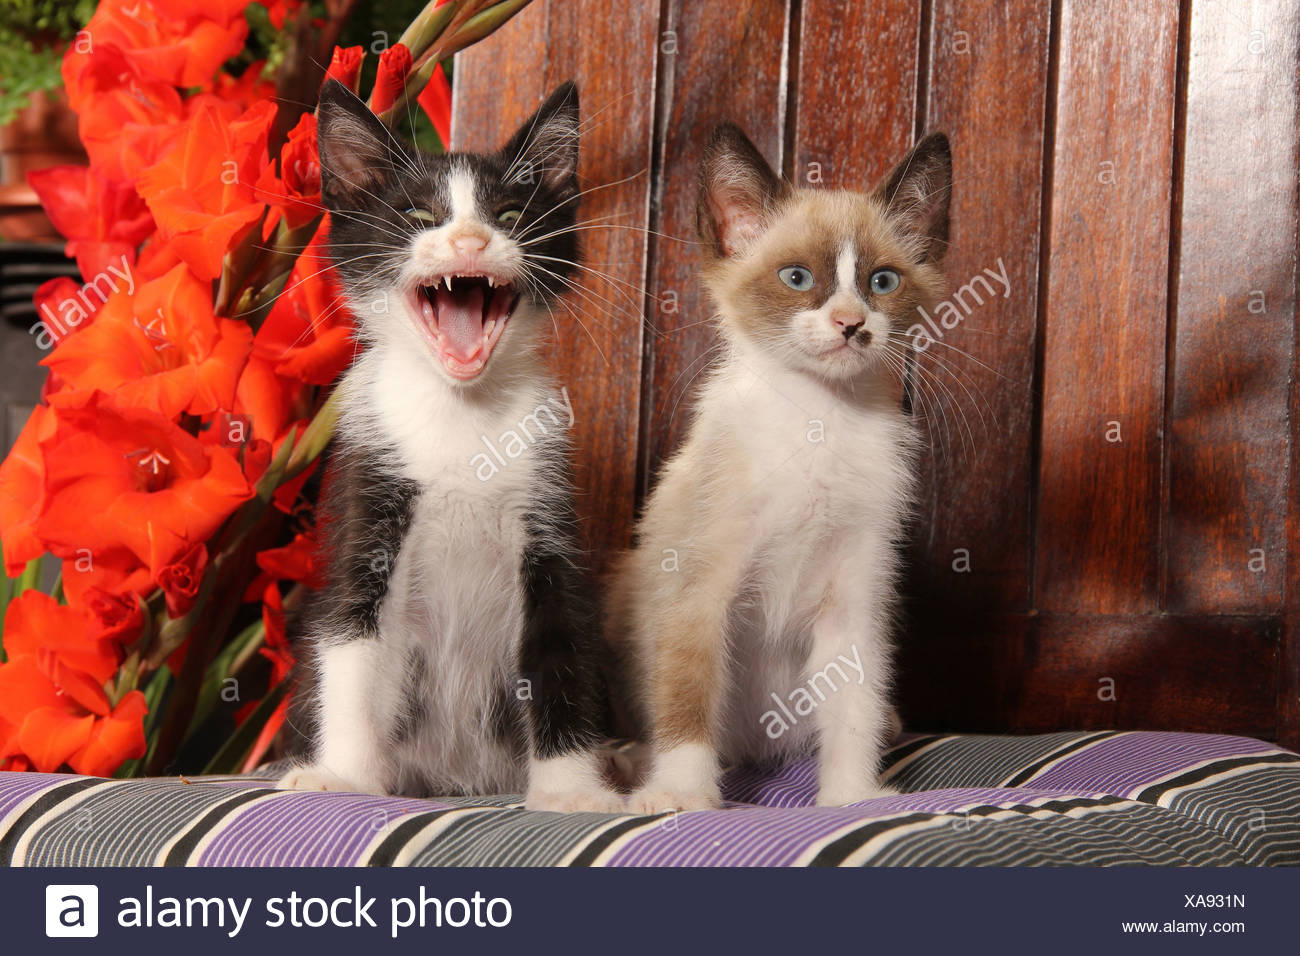 Domestic Cat Two Kittens 2 Month Old Sitting Cushion One Of Them Is Hissing Stock Photo Alamy